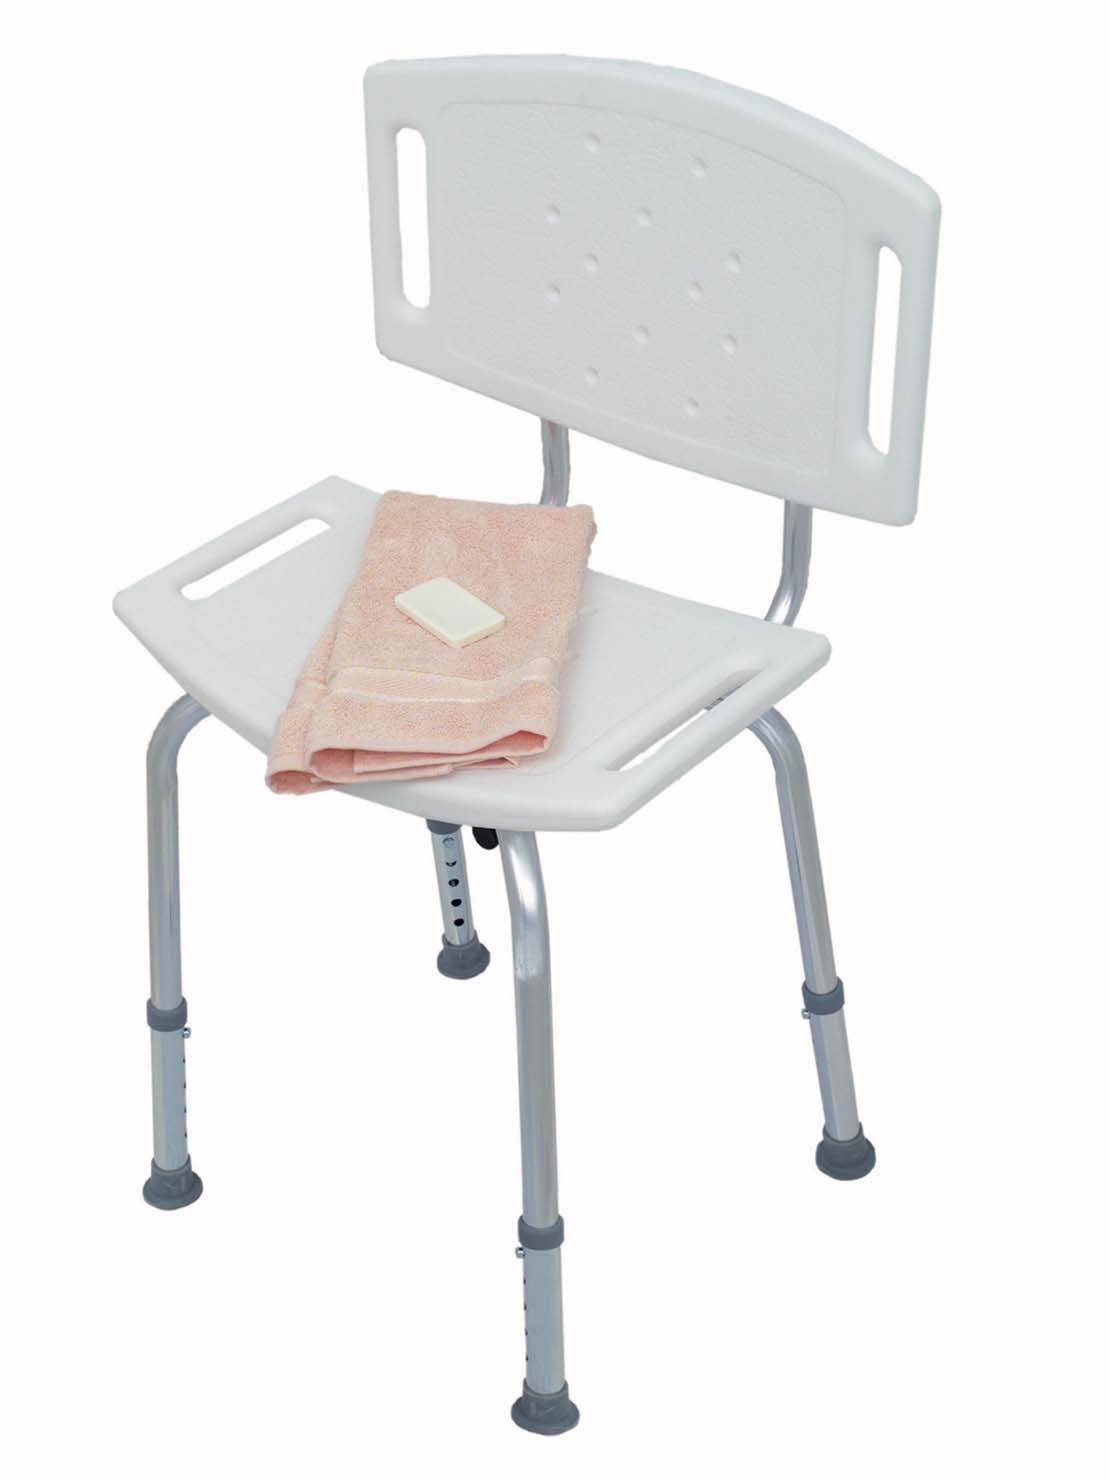 blow-molded-bath-seat-w-backrest-522-1716-1999-lr.jpg